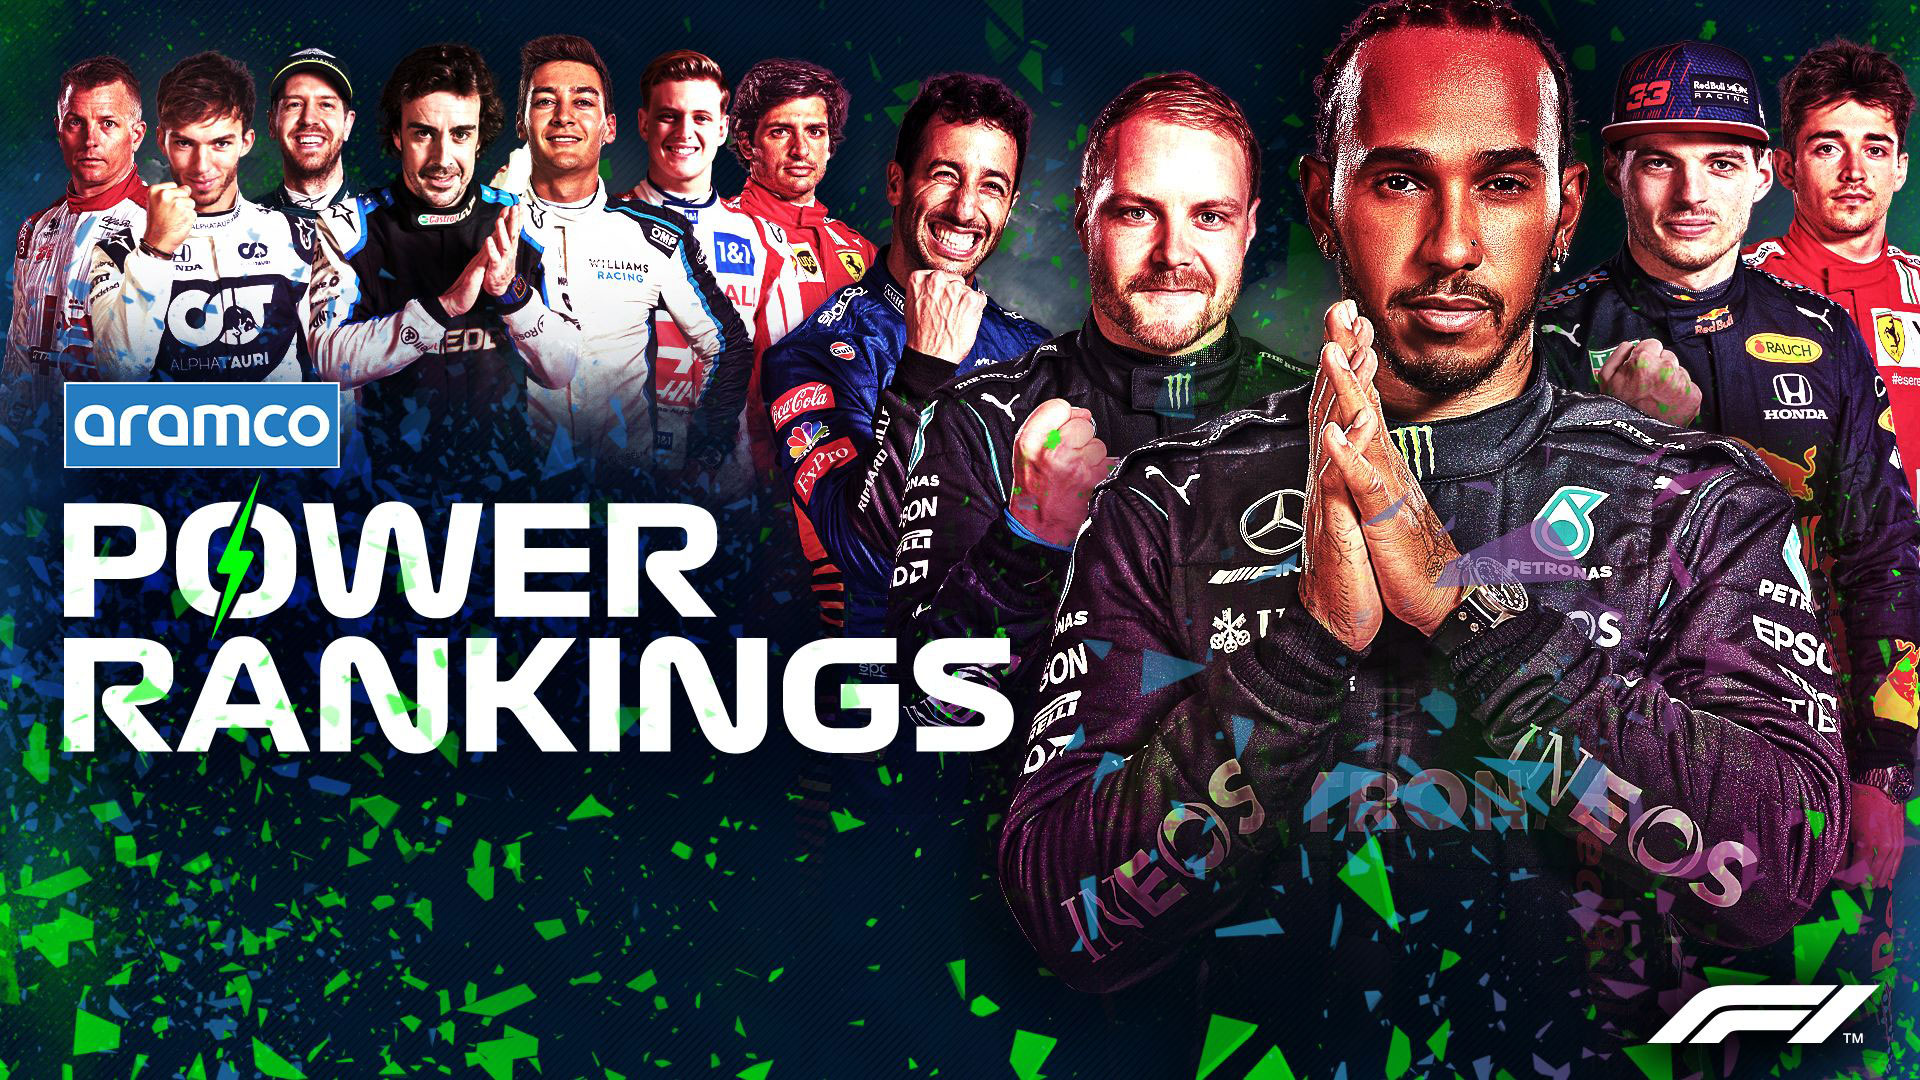 F1 POWER RANKINGS: Who impressed our judges most on F1's return to Austin?